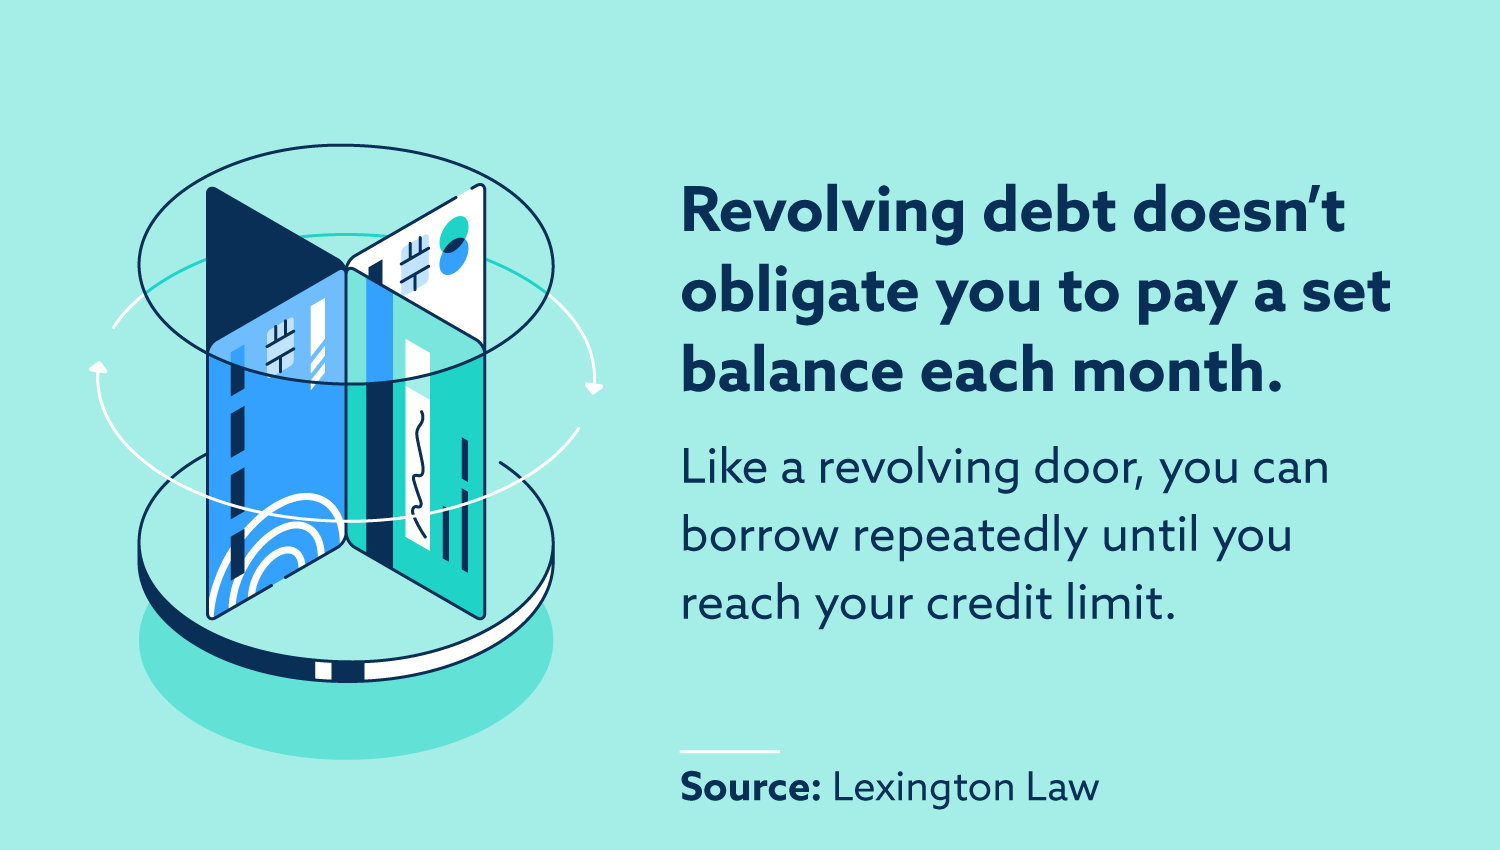 Revolving debt doesn't obligate you to pay a set balance each month. Like a revolving door, you can borrow repeatedly until you reach your credit limit.